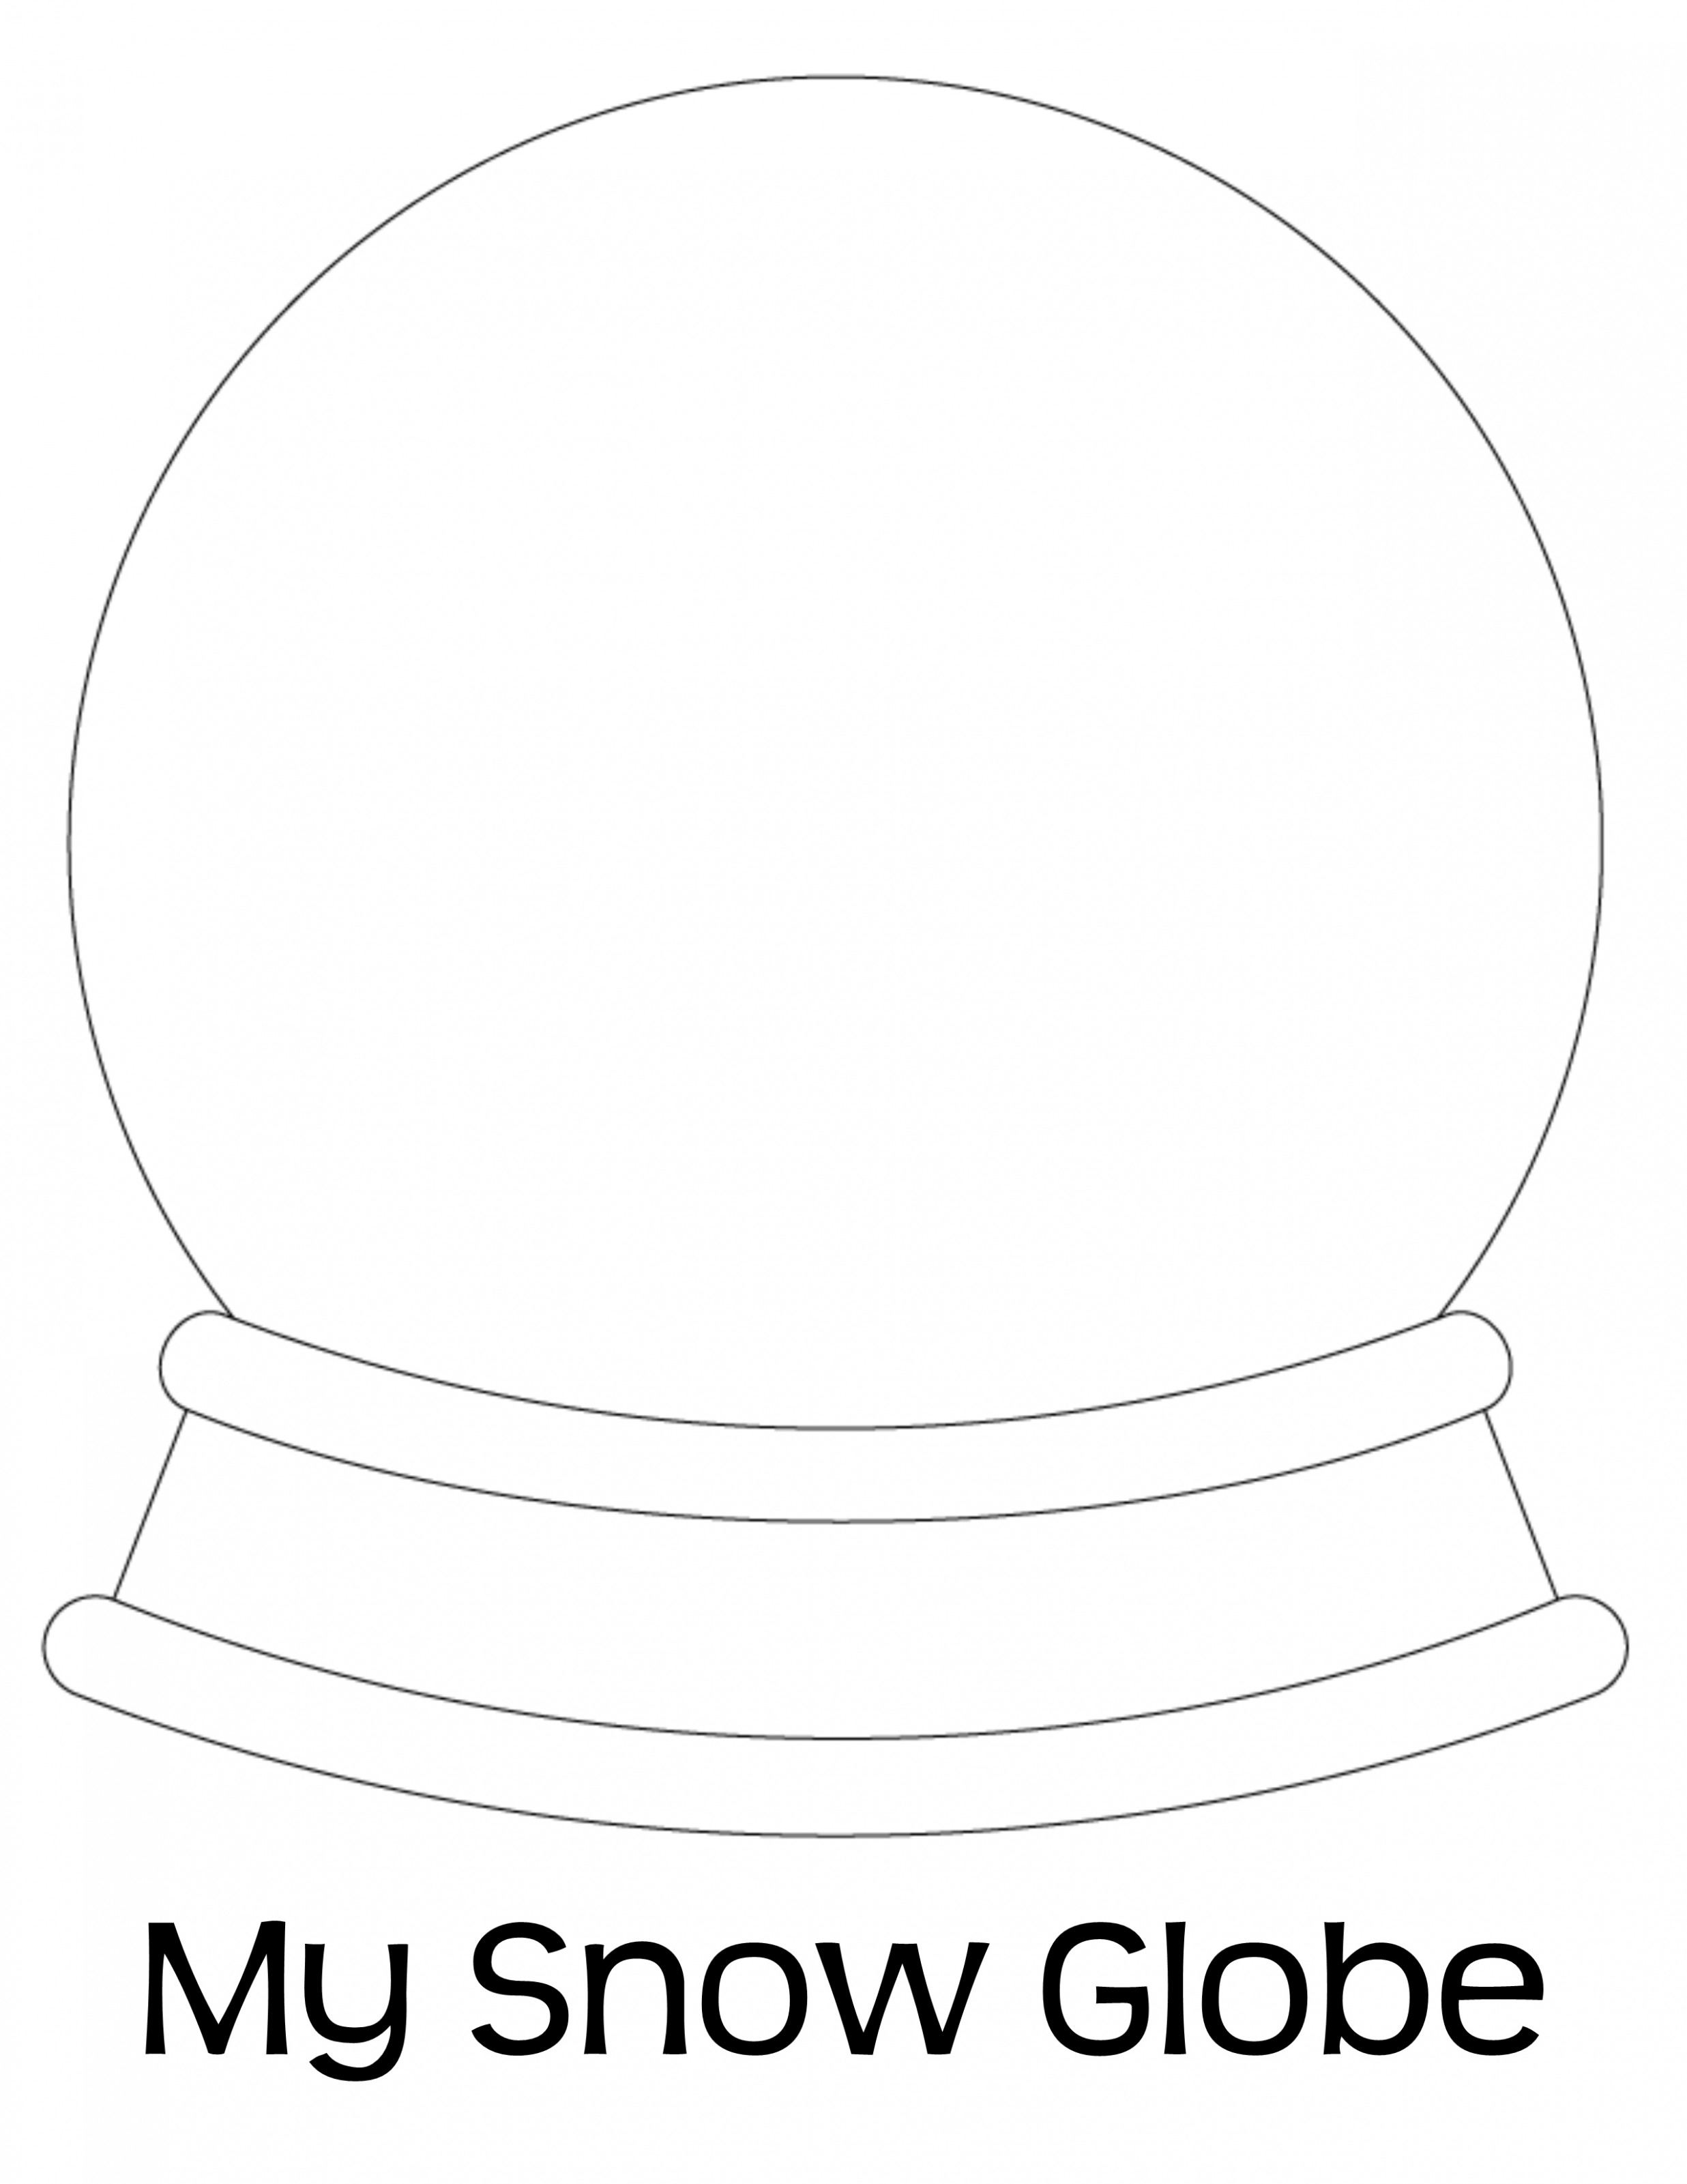 Empty Snow Globe Coloring Page Coloring Pages, Globe Coloring Page ..